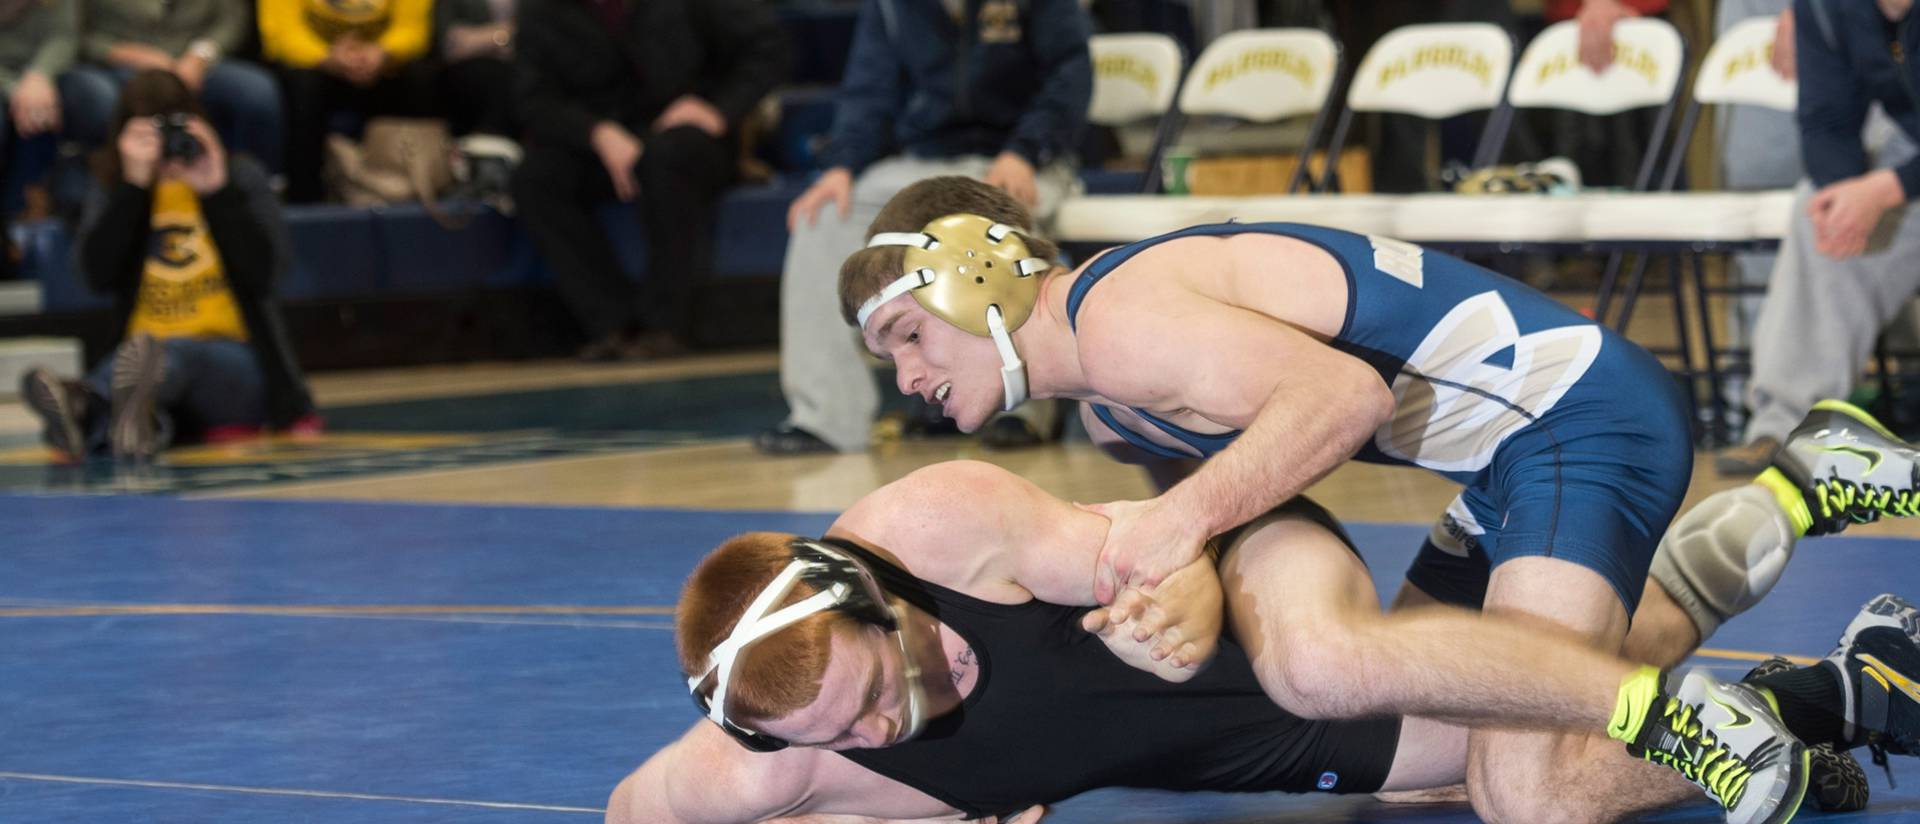 Blugold Nathaniel Behnke (in blue) during a wrestling match